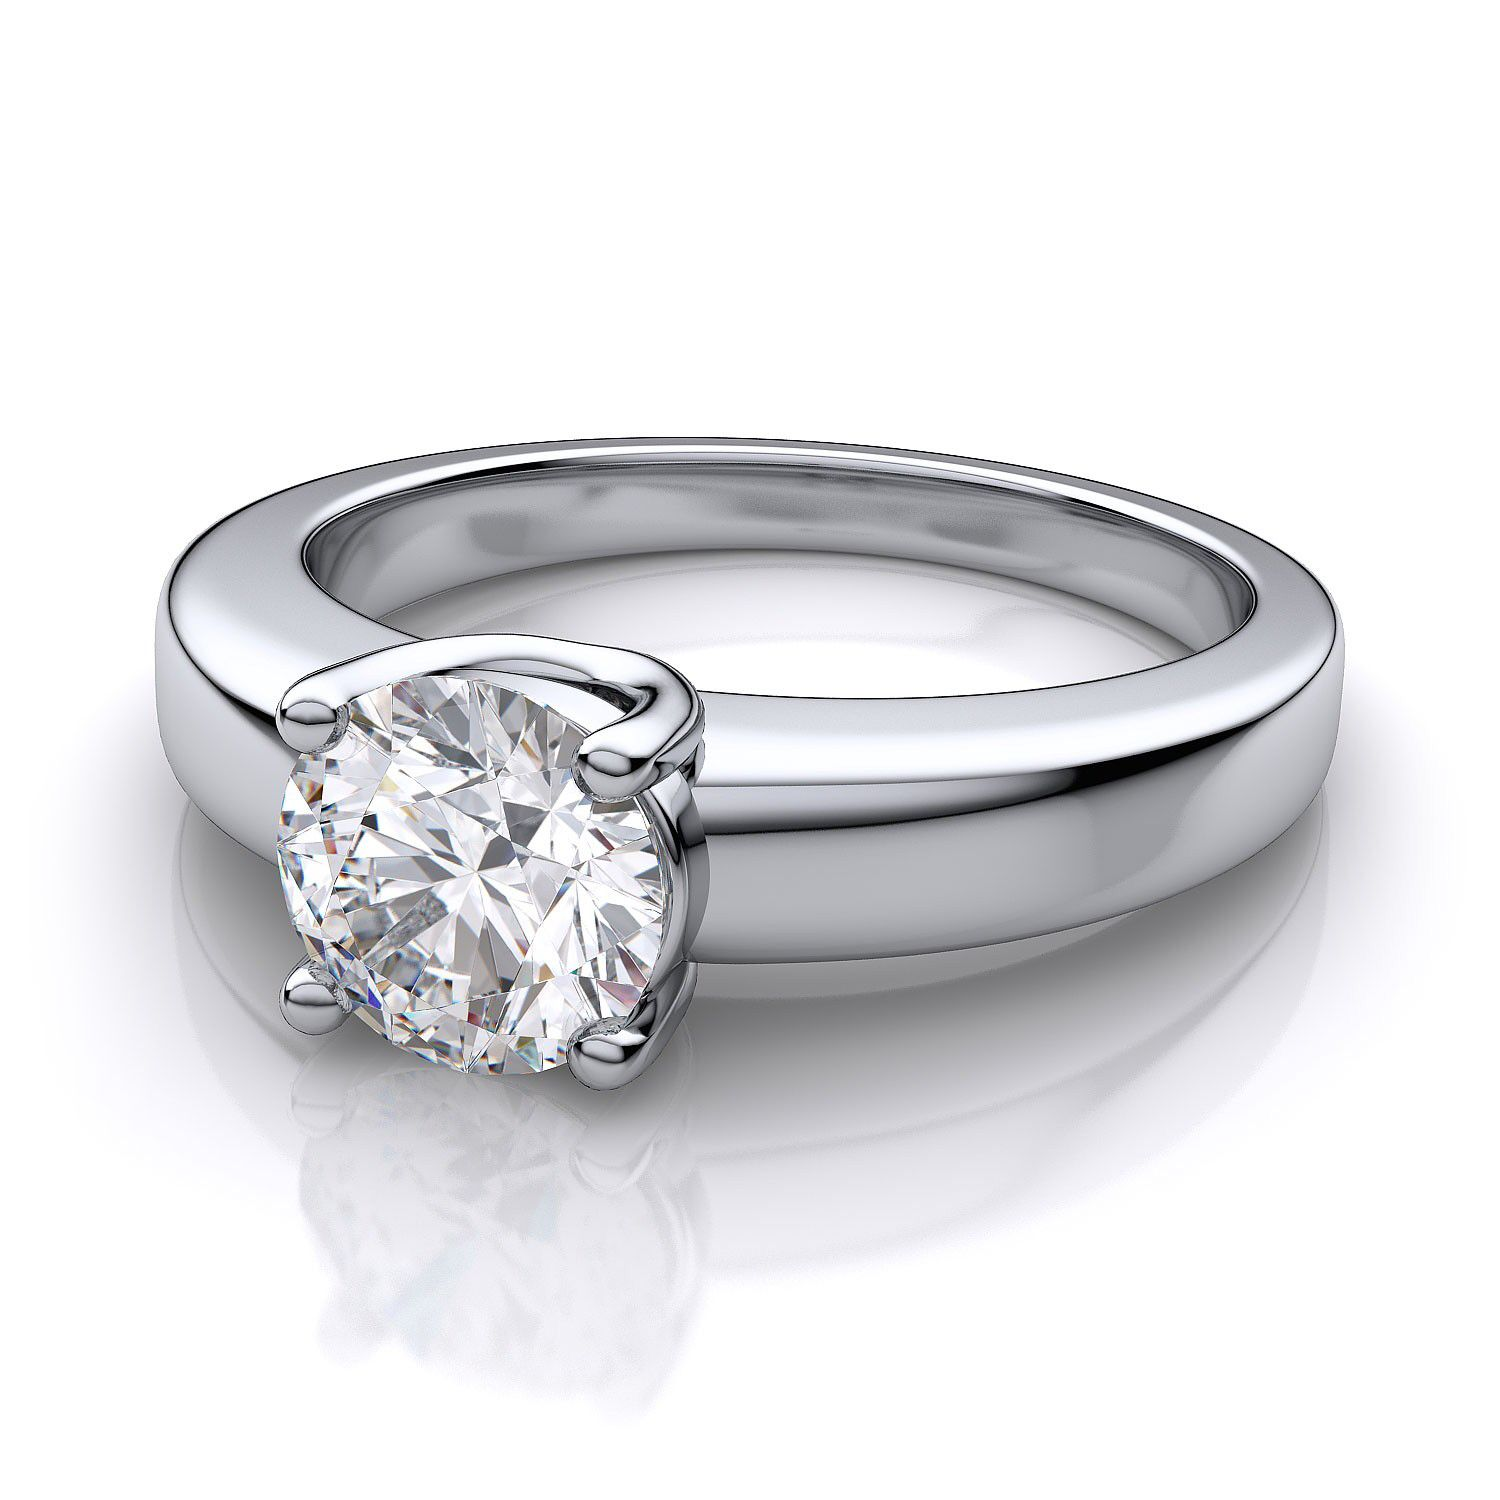 Image from httpaclhicomwpcontentuploads201412weddingrings